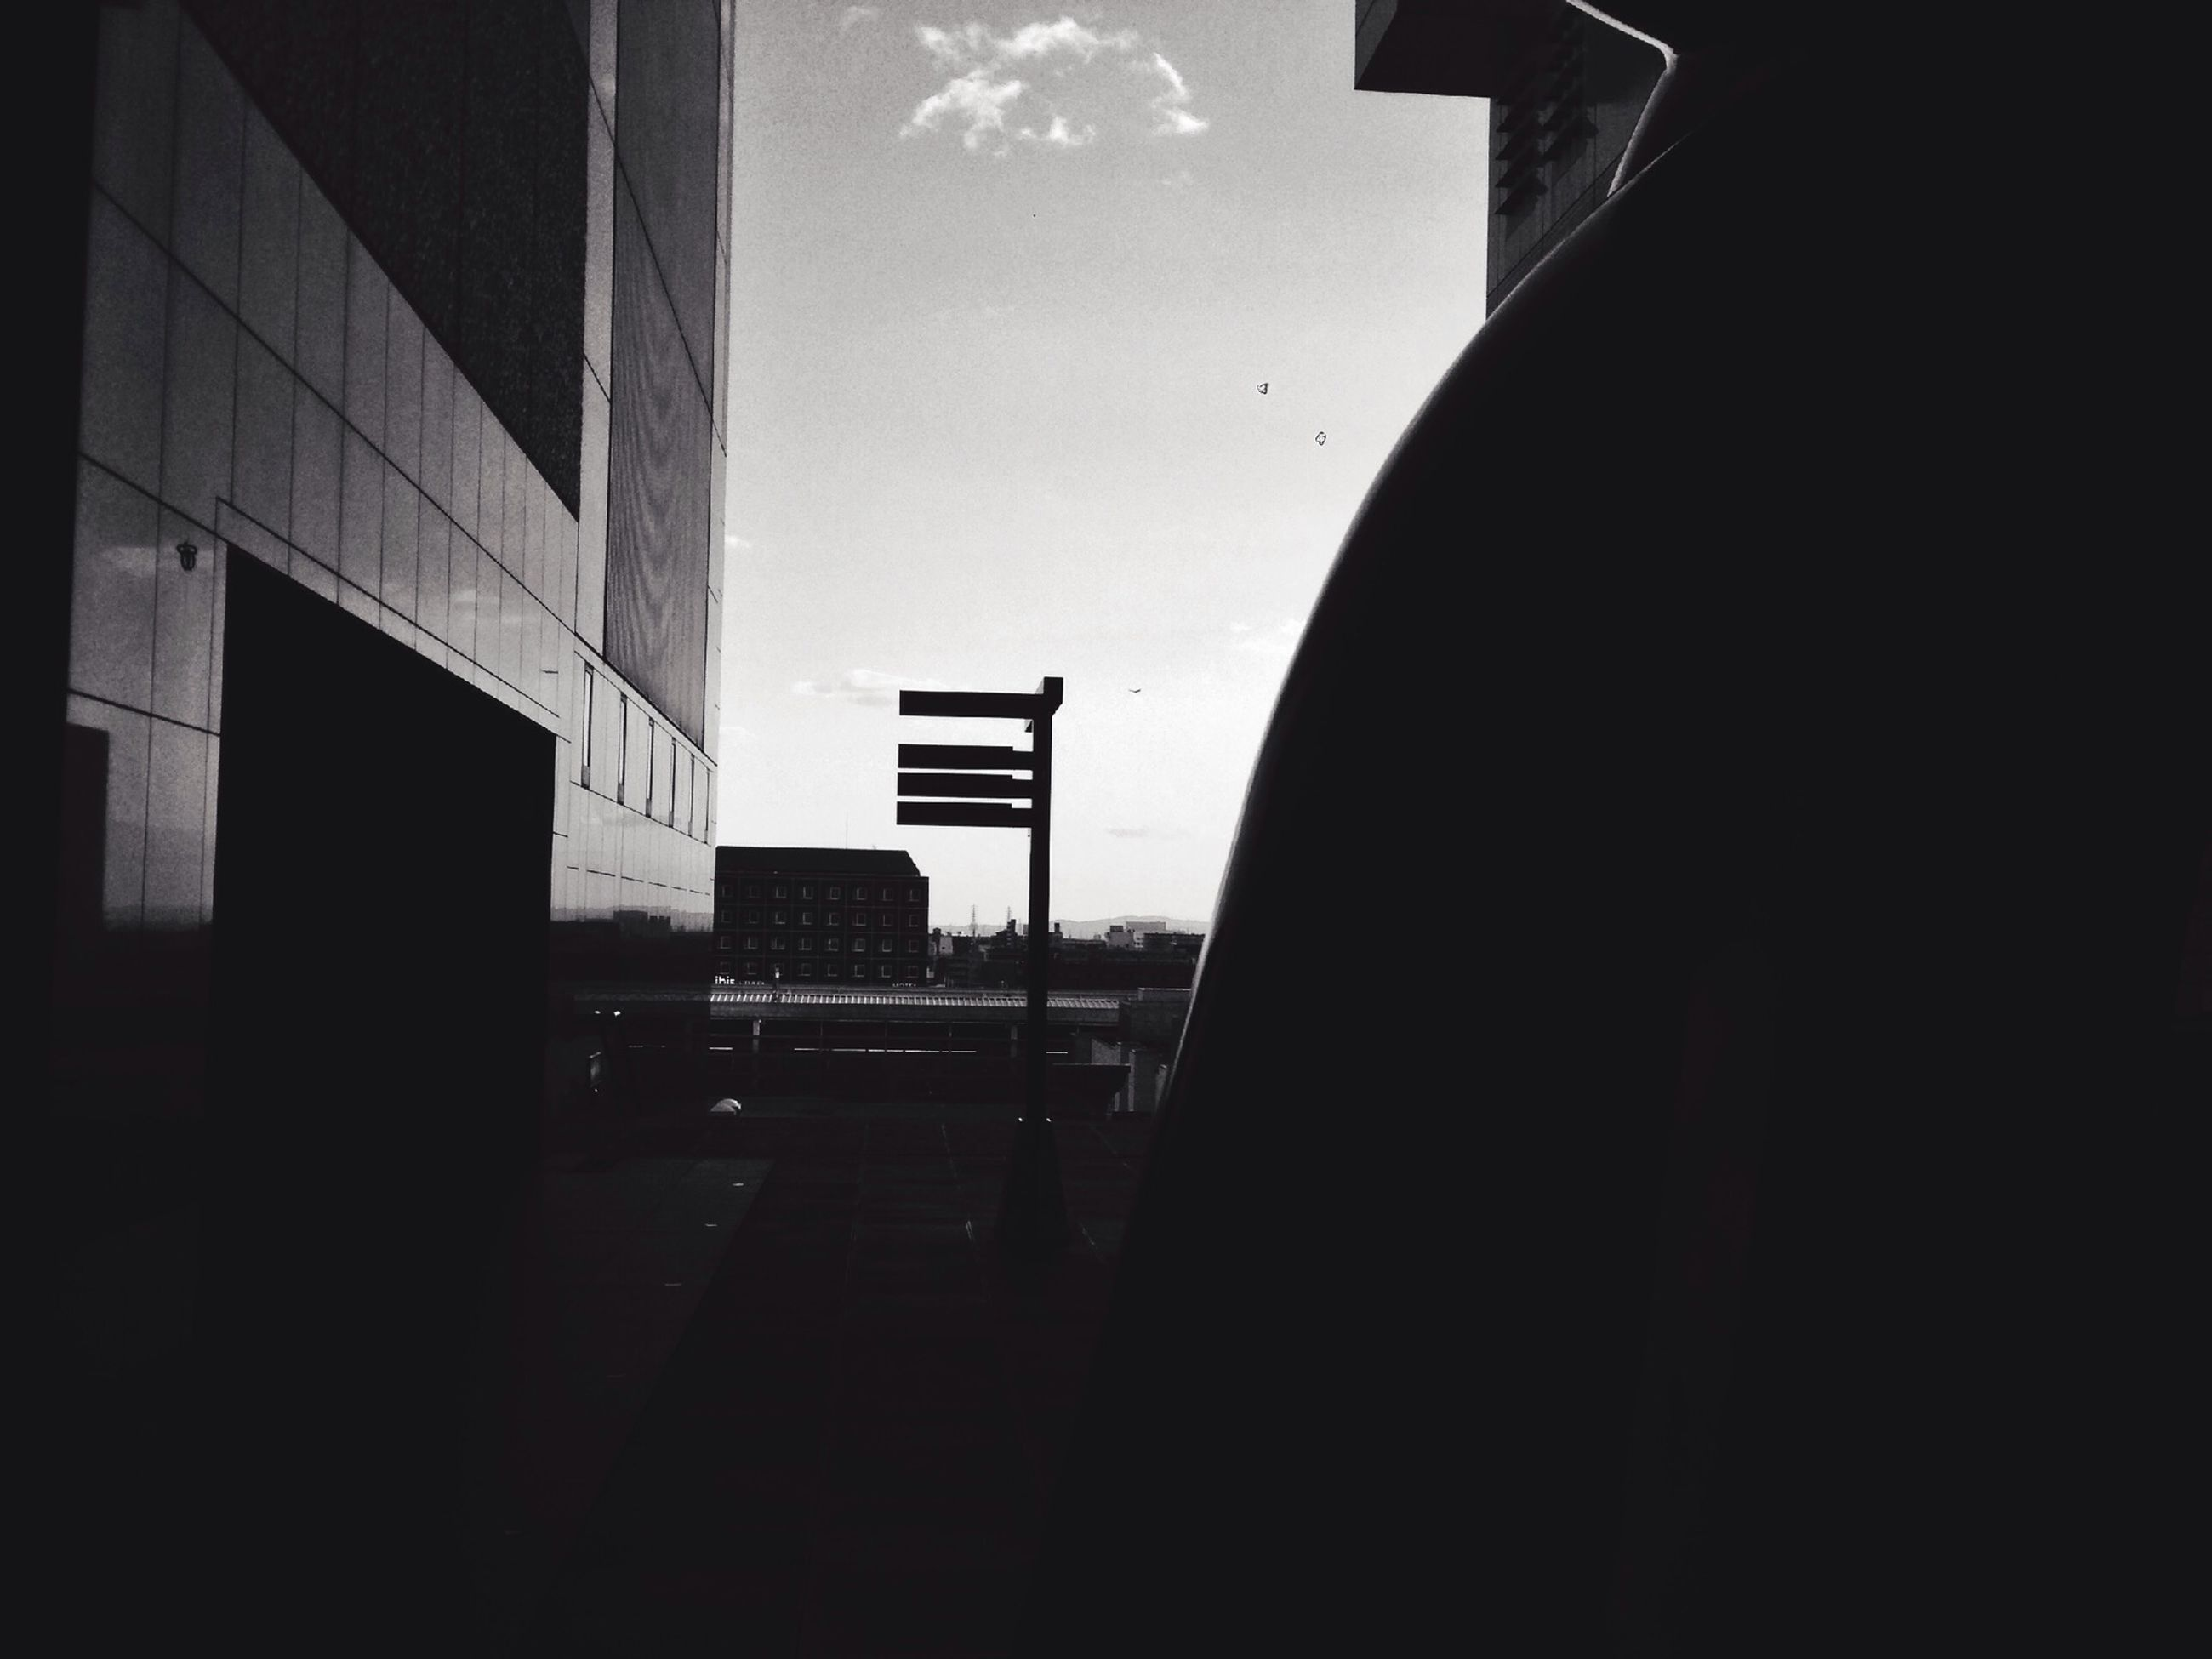 architecture, built structure, building exterior, indoors, building, window, sky, city, silhouette, the way forward, dark, transportation, sunlight, no people, diminishing perspective, day, residential structure, low angle view, street, clear sky